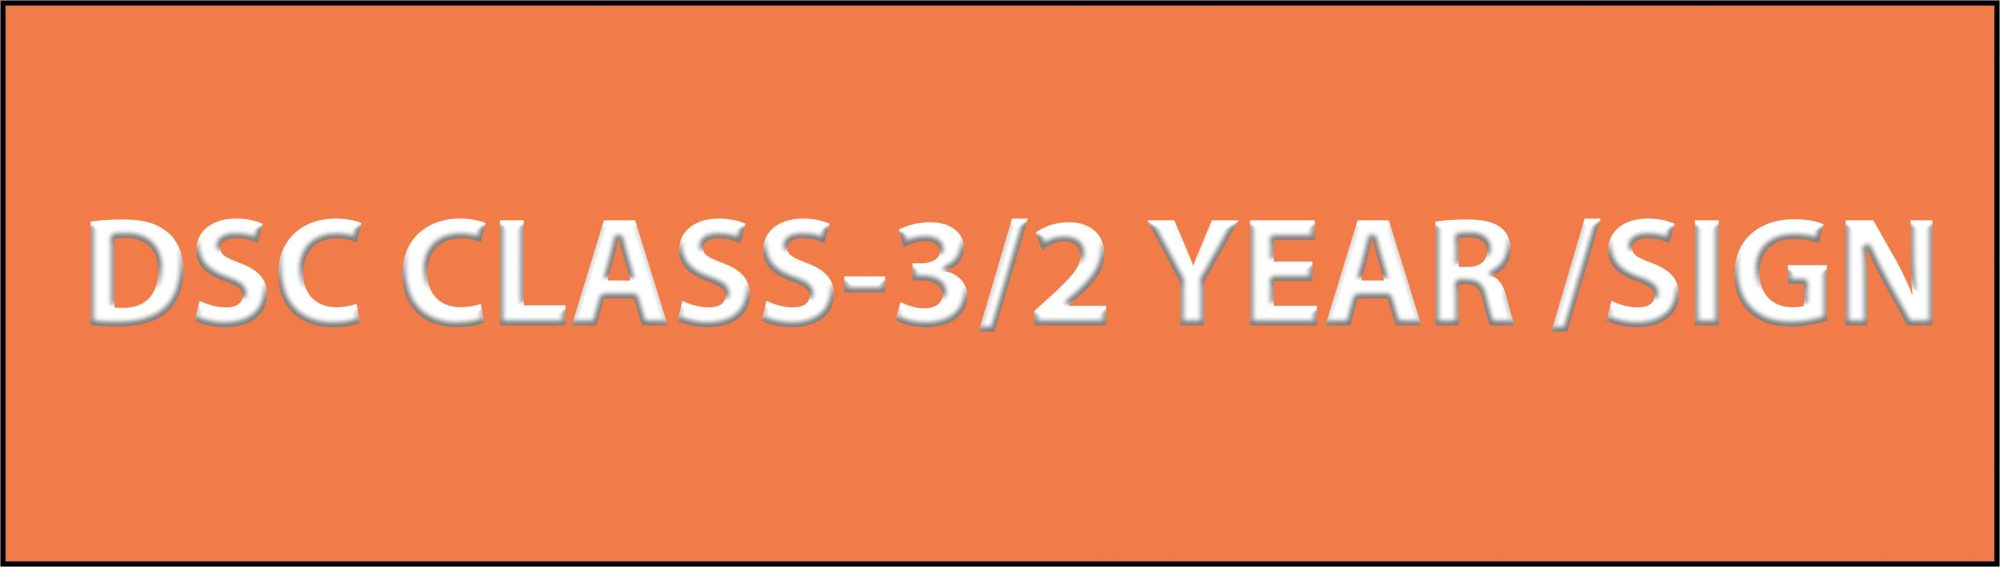 DSC CLASS 3 2 YEAR SIGN scaled